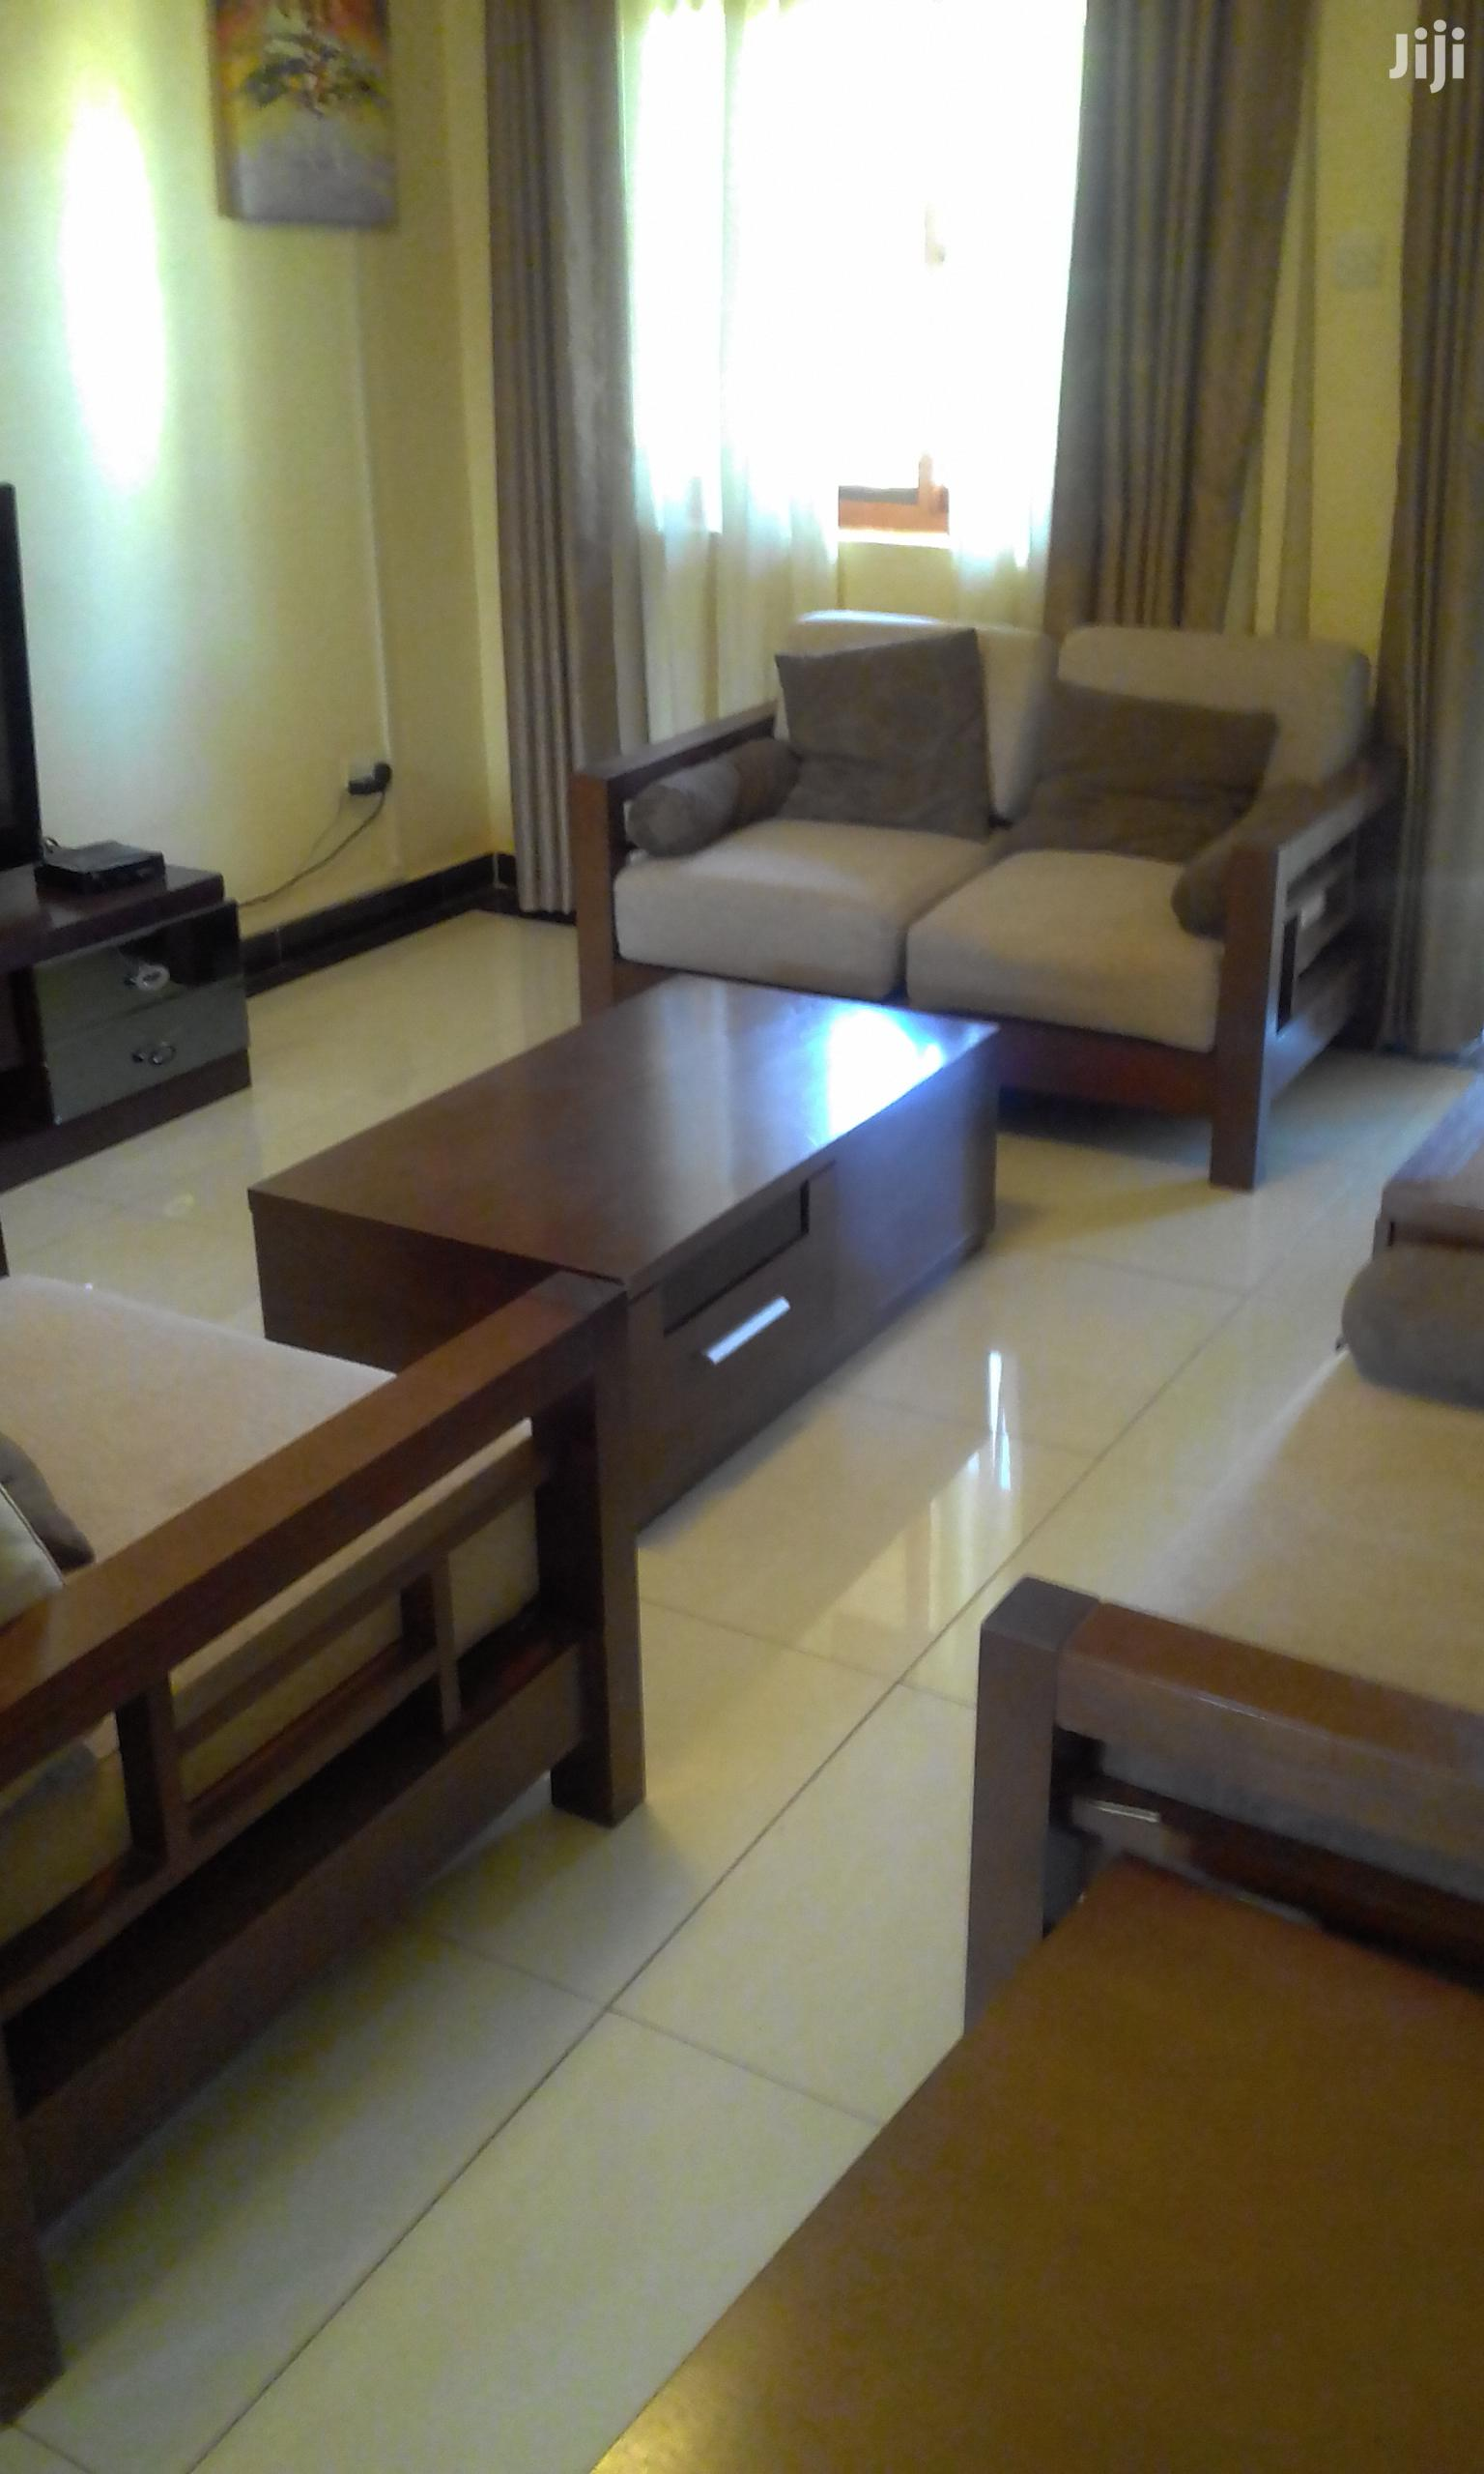 3 Bdroom Apartment For Rent In Naguru | Houses & Apartments For Rent for sale in Kampala, Central Region, Uganda